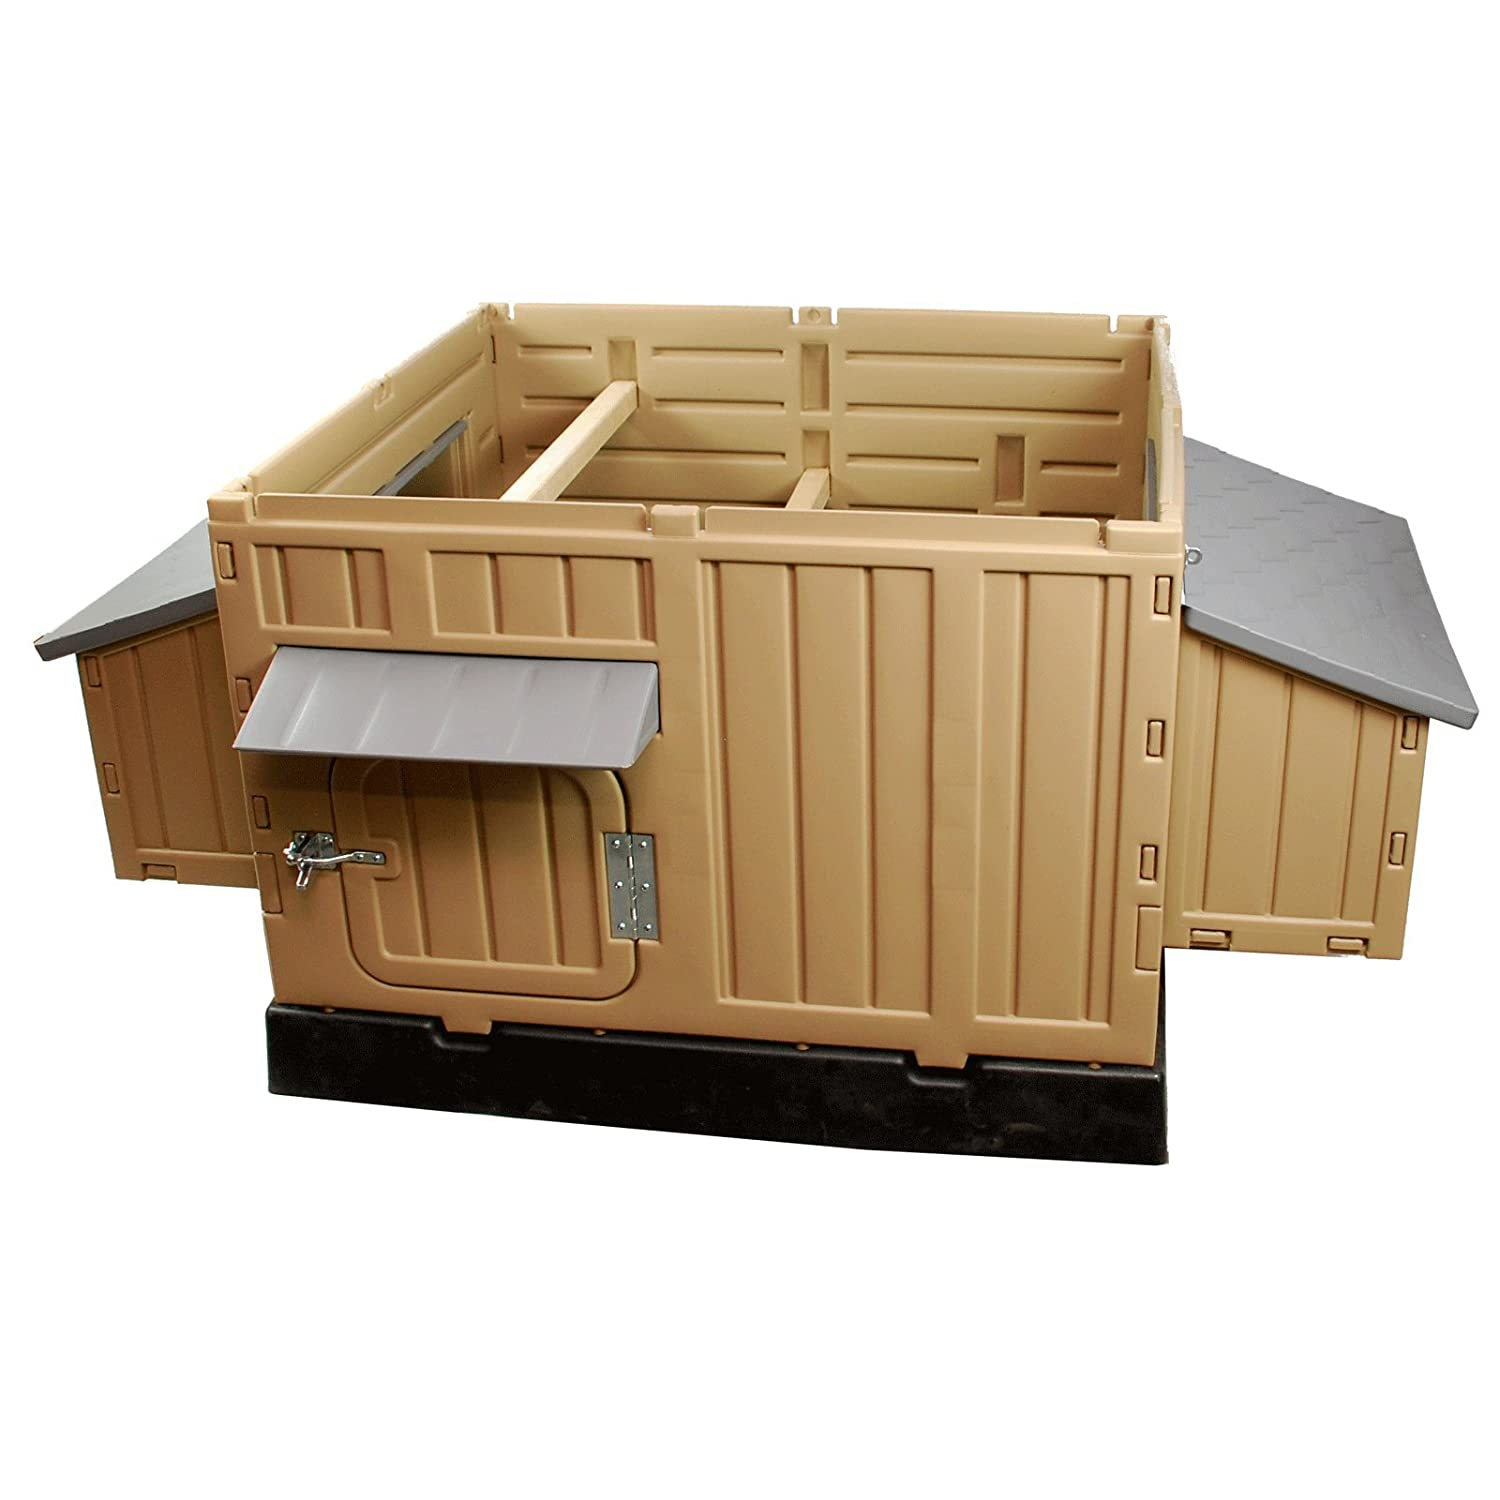 Charmant Amazon.com : SnapLock Formex Large Chicken Coop Backyard Hen House 4 6  Large 6 12 Bantams : Garden U0026 Outdoor